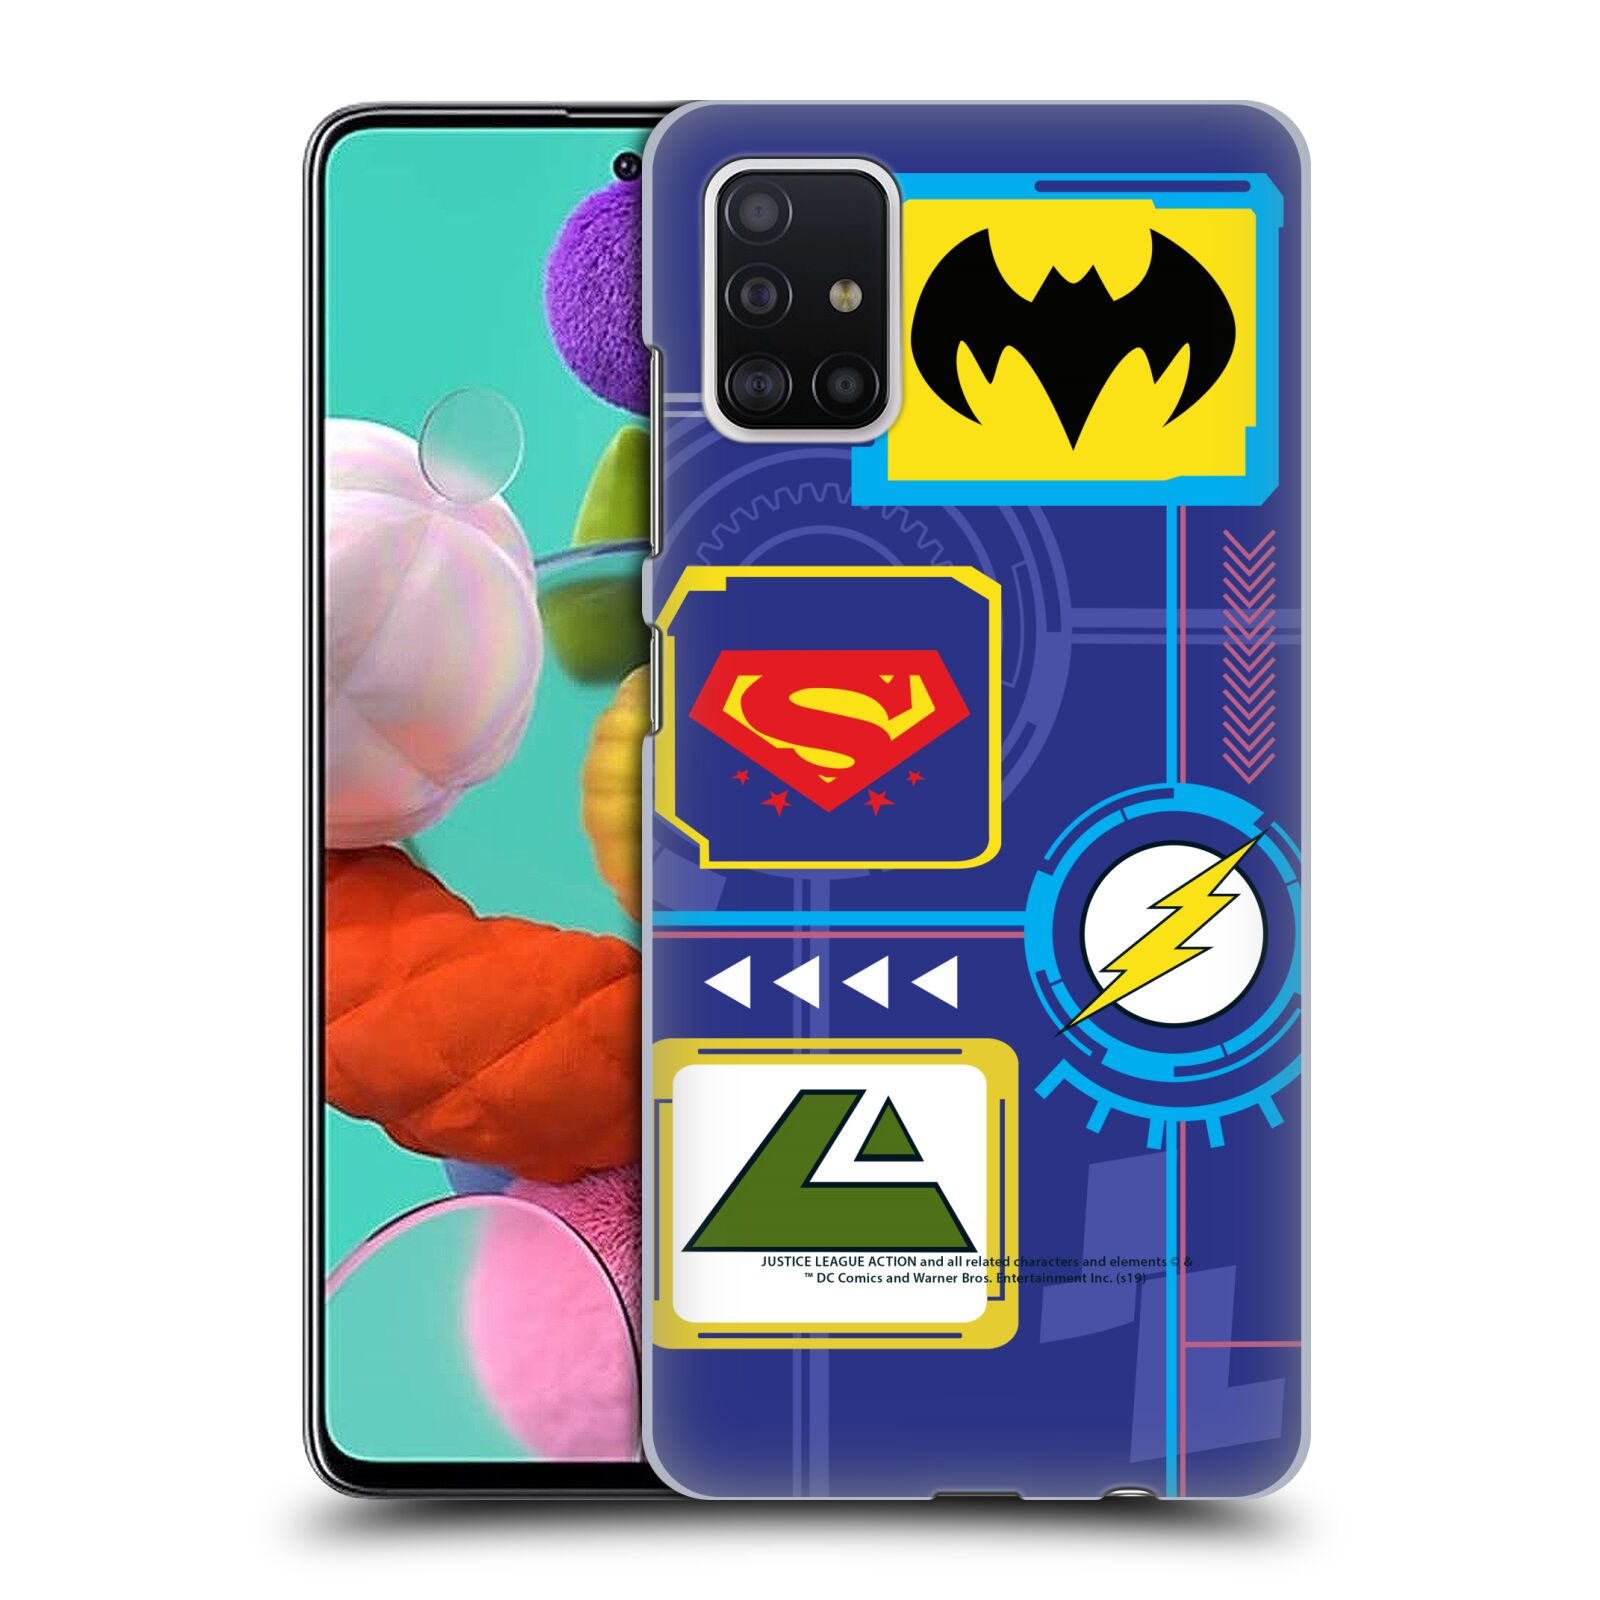 Official Justice League Action Logos Digital Case for Samsung Galaxy A51 (2019)